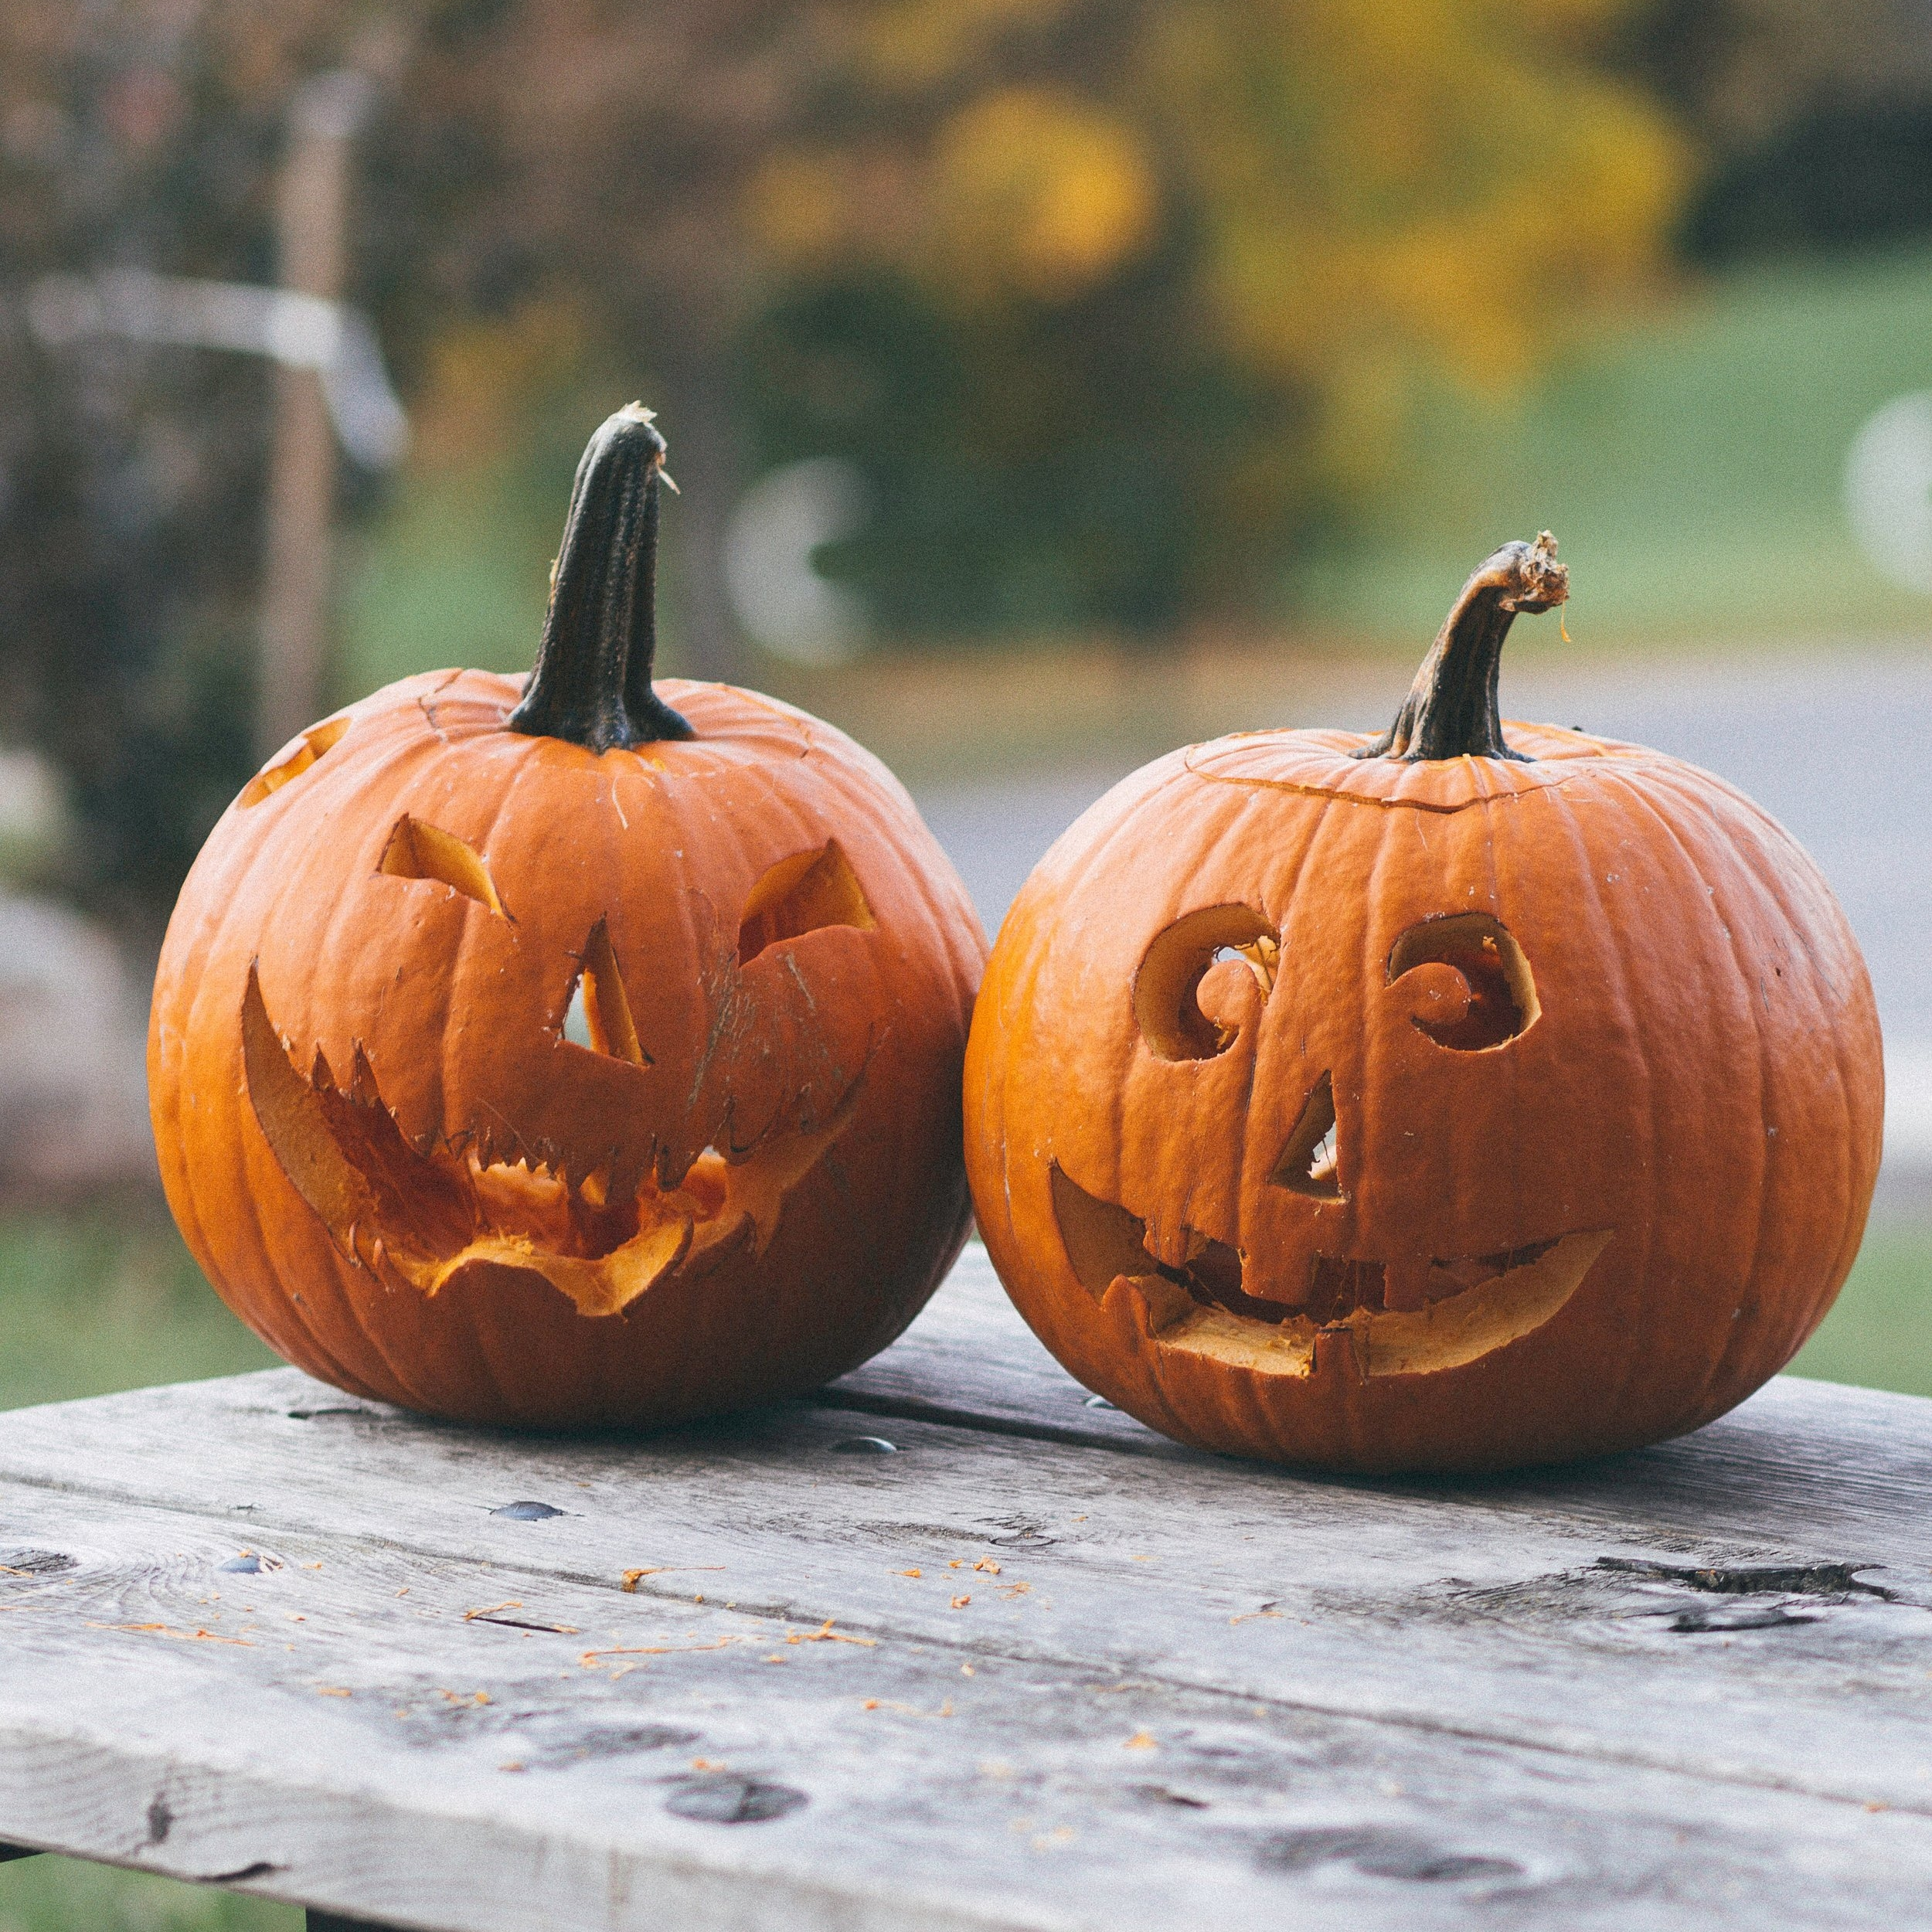 carved pumpkins on wooden table